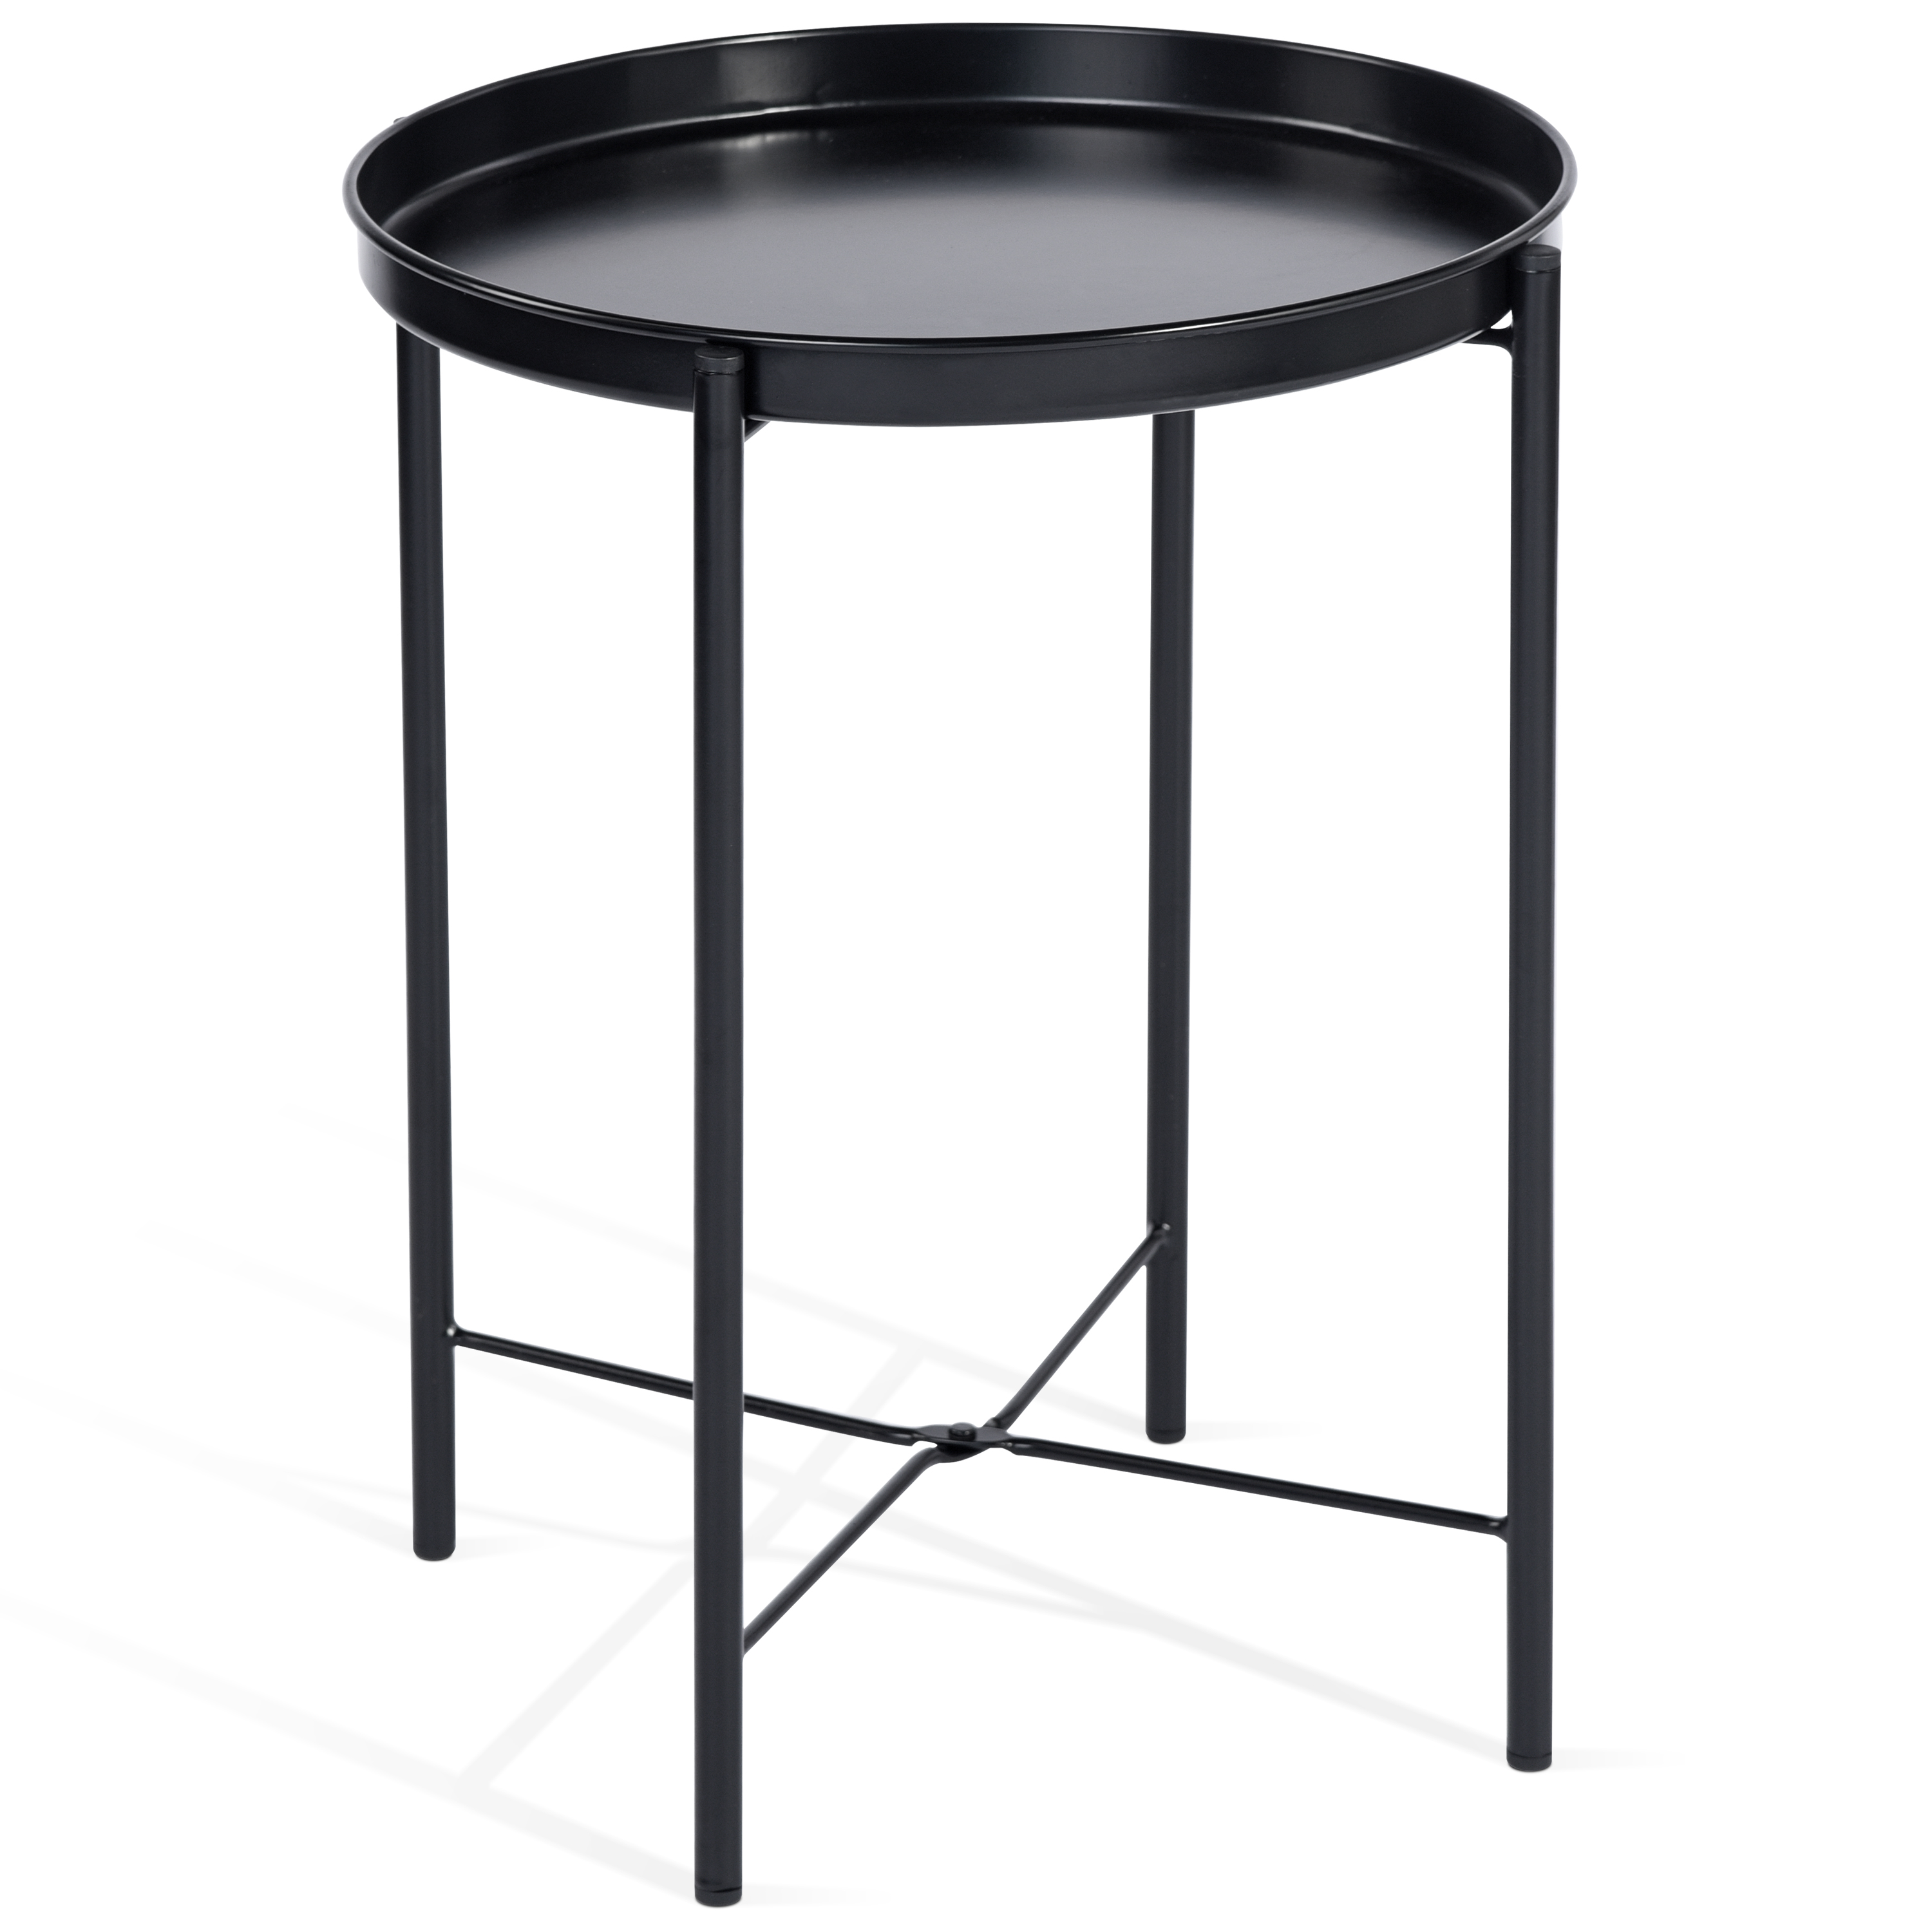 Cap Living 17 Inch Foldable Round Metal Tray End Table